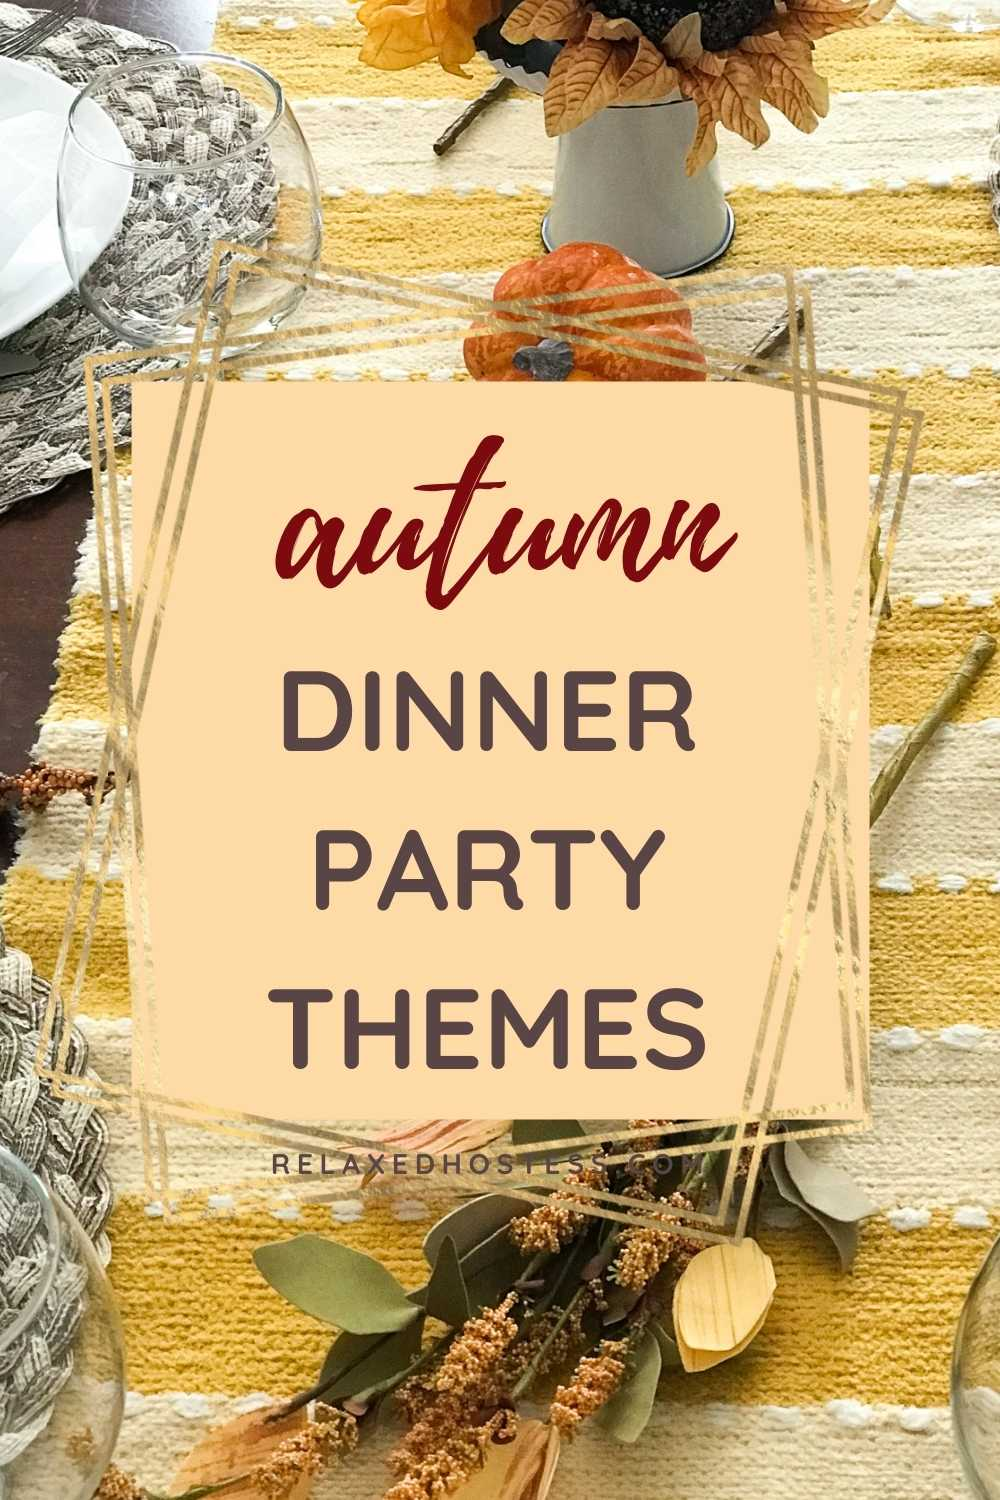 Autumn dinner party themes. Yellow striped table runner. Sunflowers on a white stand. Twigs and pumpkins on the runner.